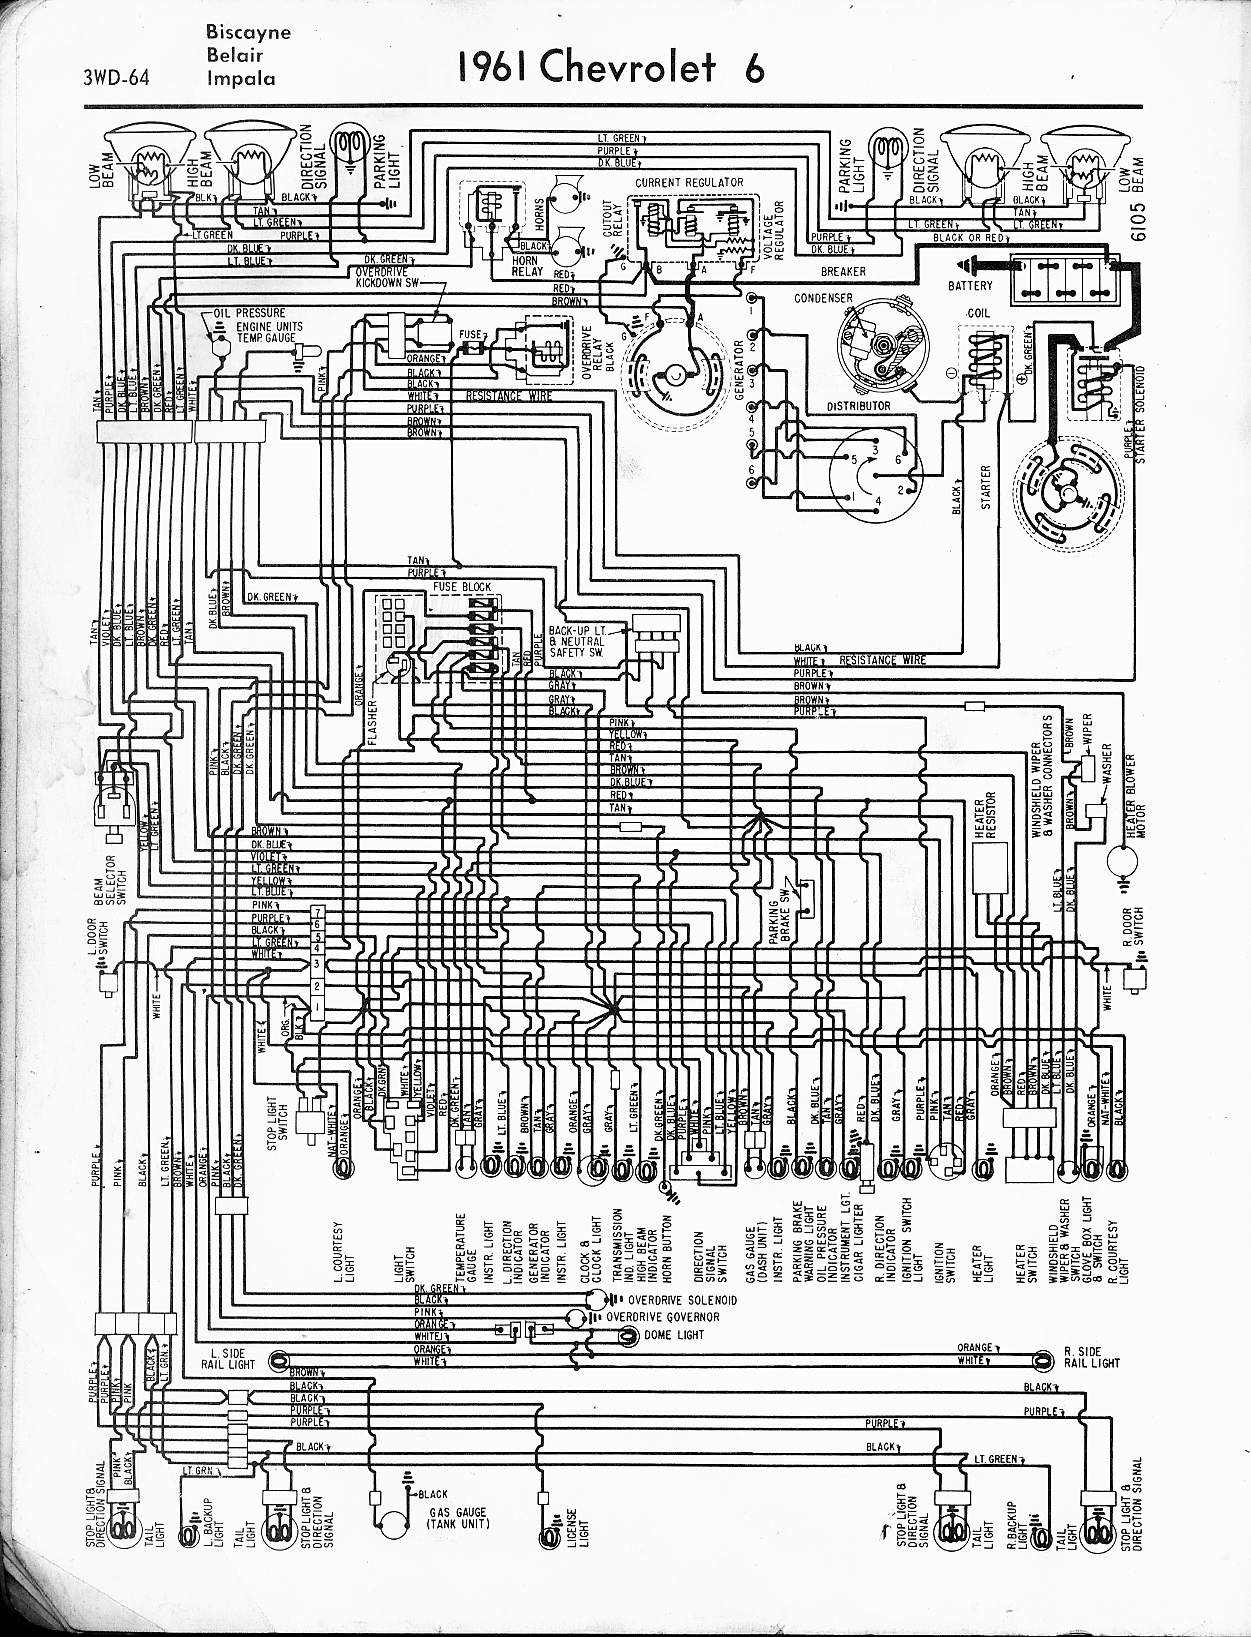 Miraculous 65 Chevy C10 Wiring Diagram Wiring Library Wiring Digital Resources Indicompassionincorg